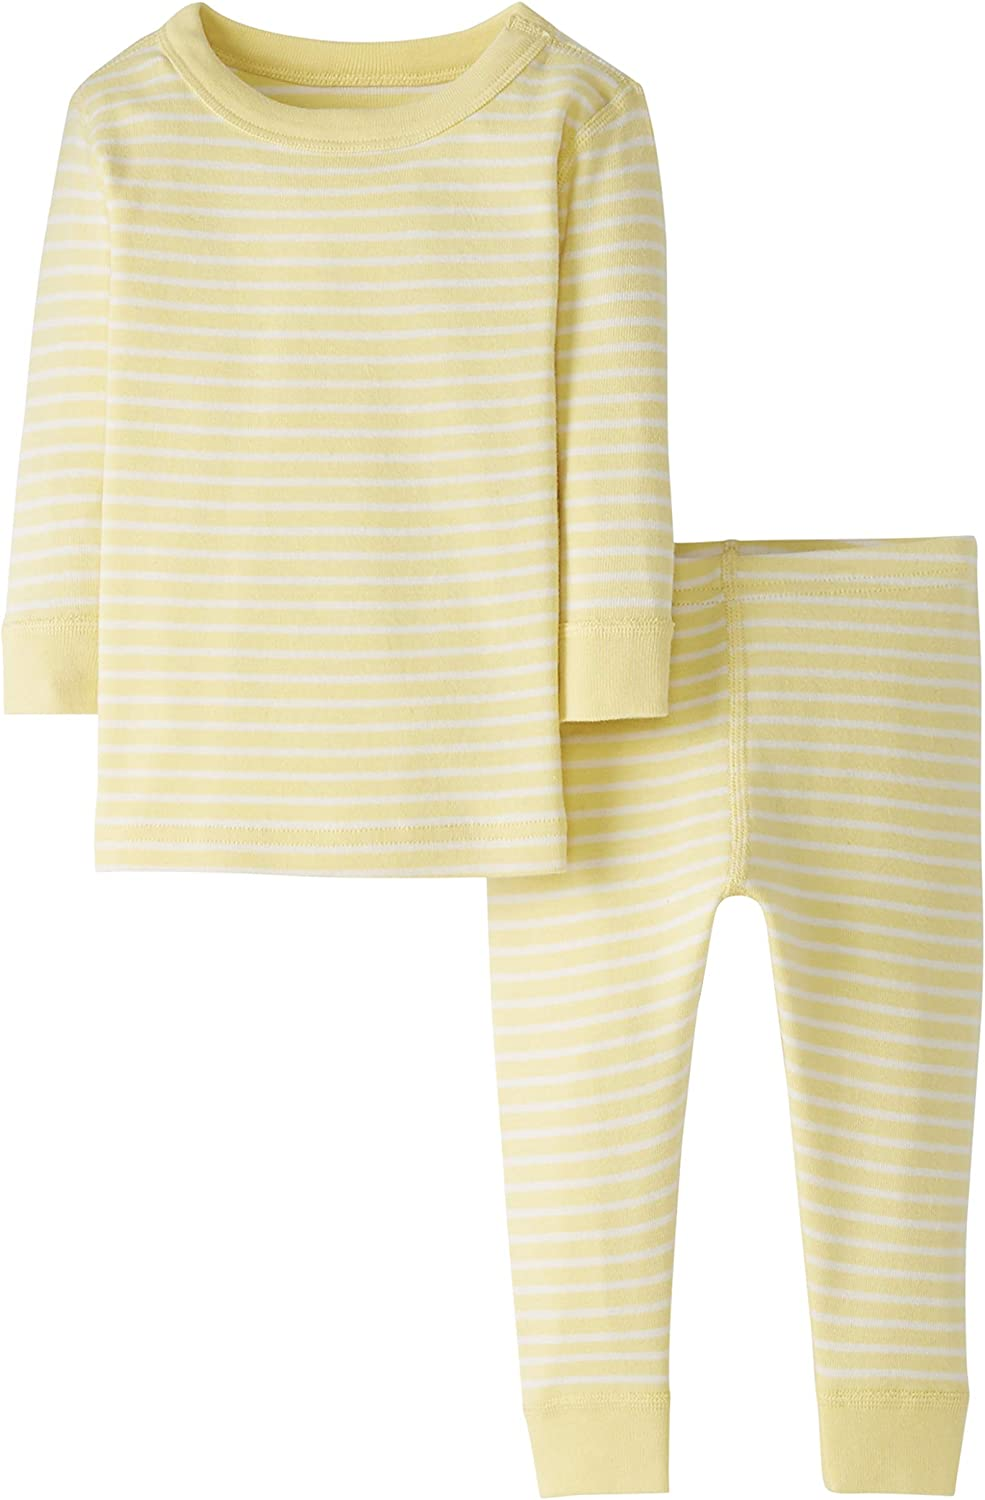 Yellow Stripe 4T Moon and Back by Hanna Andersson Baby//Toddler 2-Piece Organic Cotton Long Sleeve Stripe Pajama Set